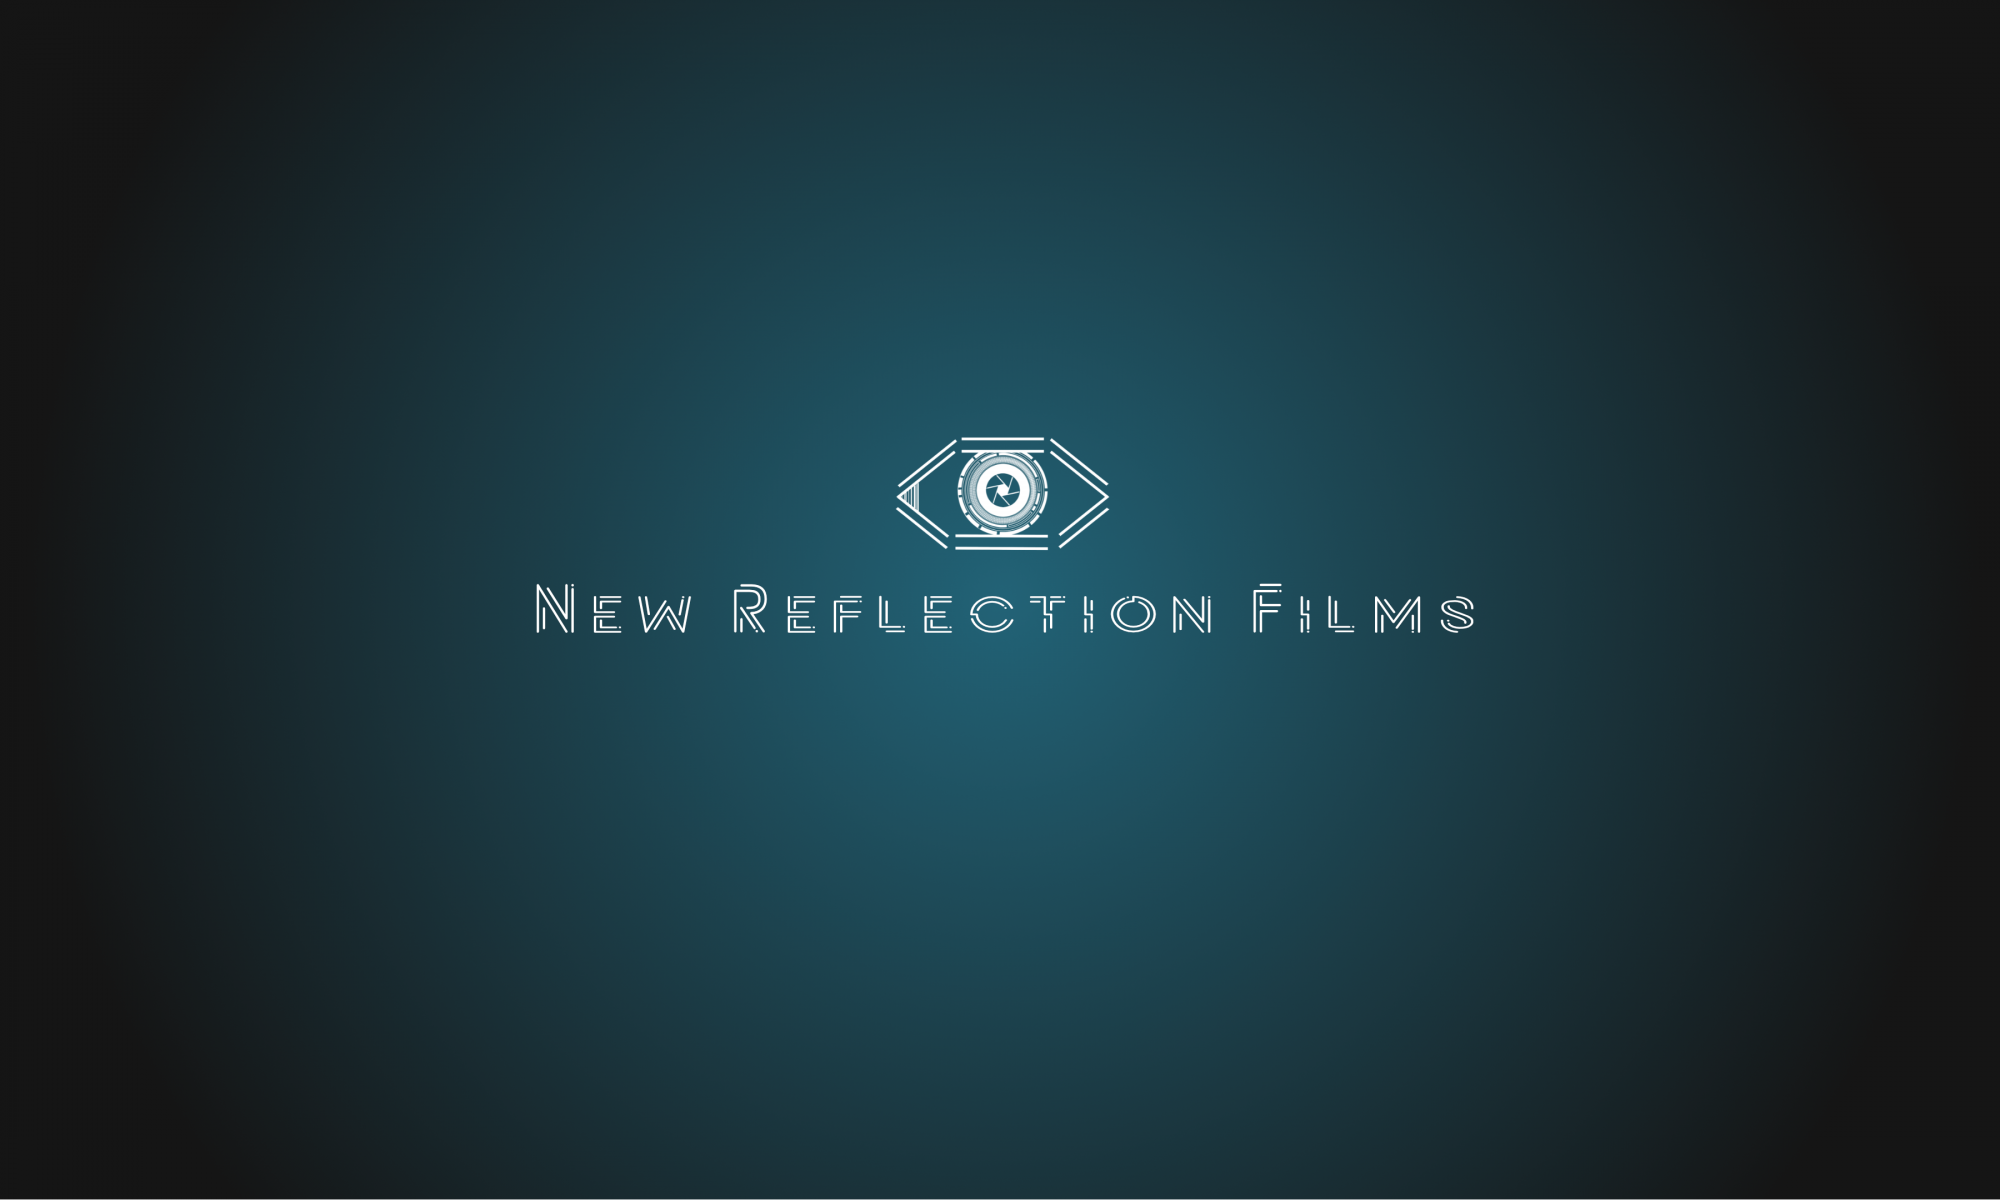 New Reflection Films